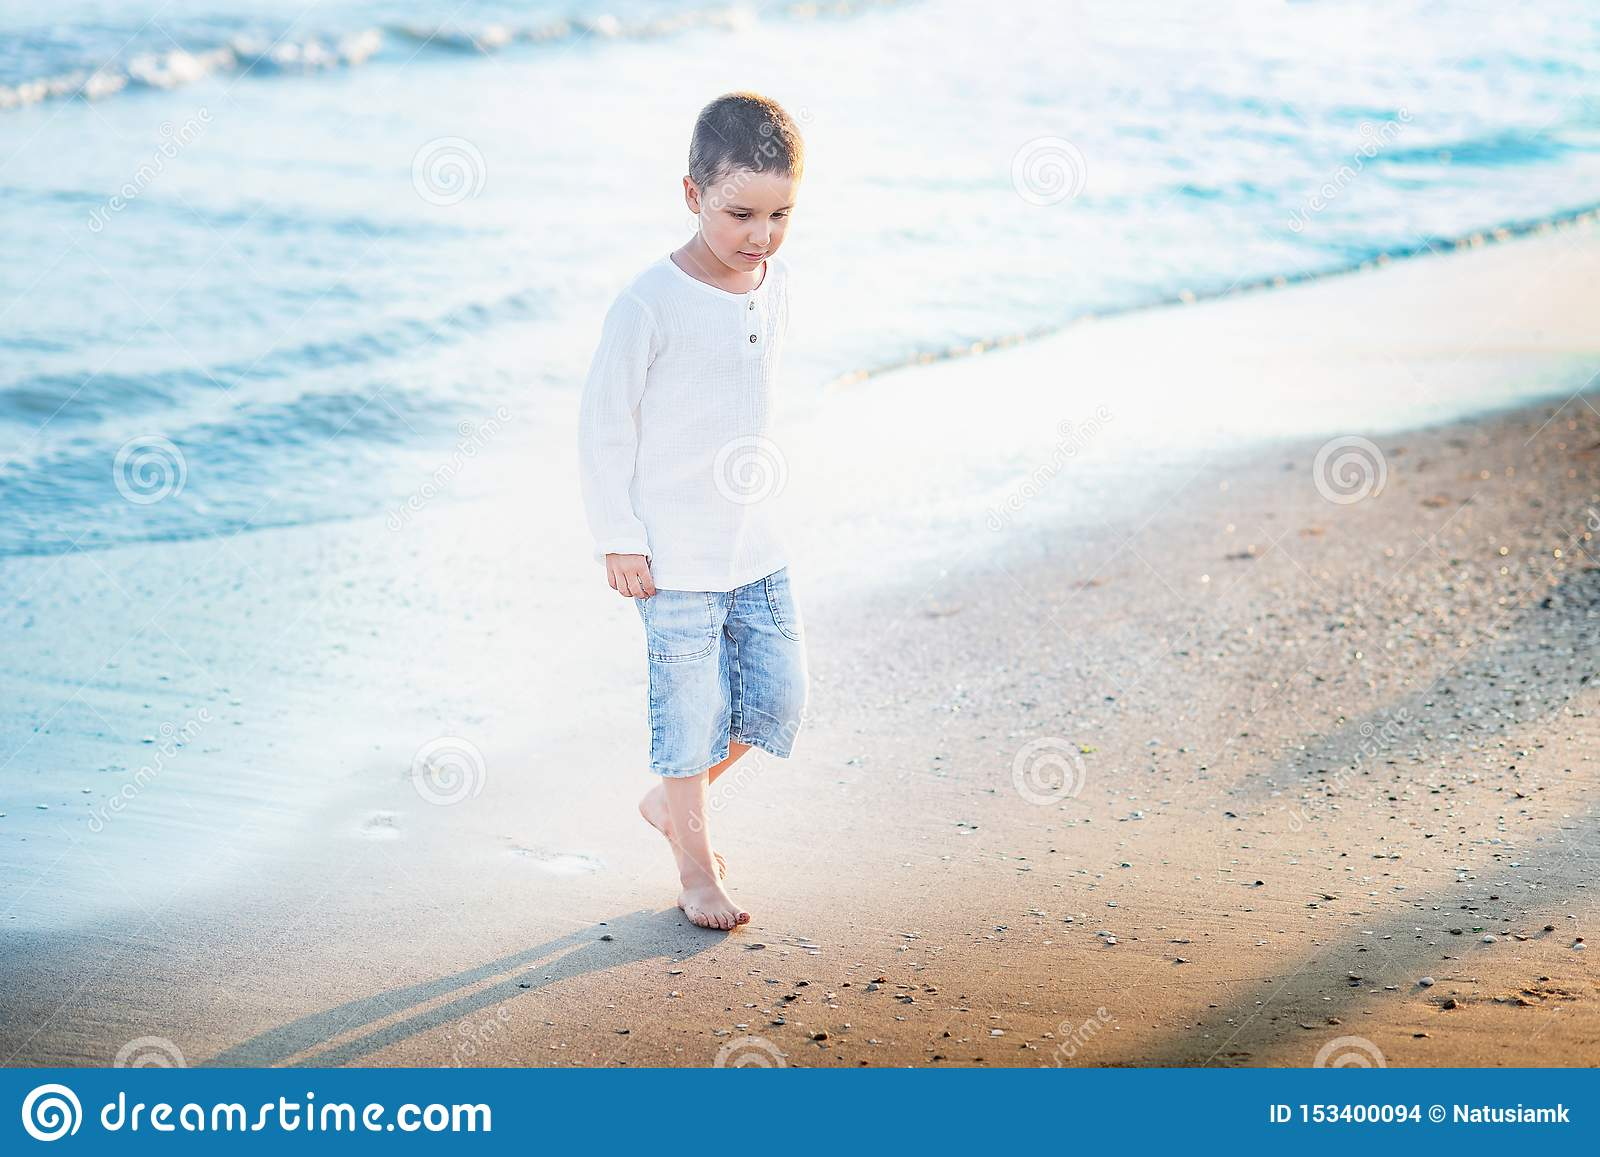 Child running on the beach. Summer vacation. happy kid playing on beach at the sunset time